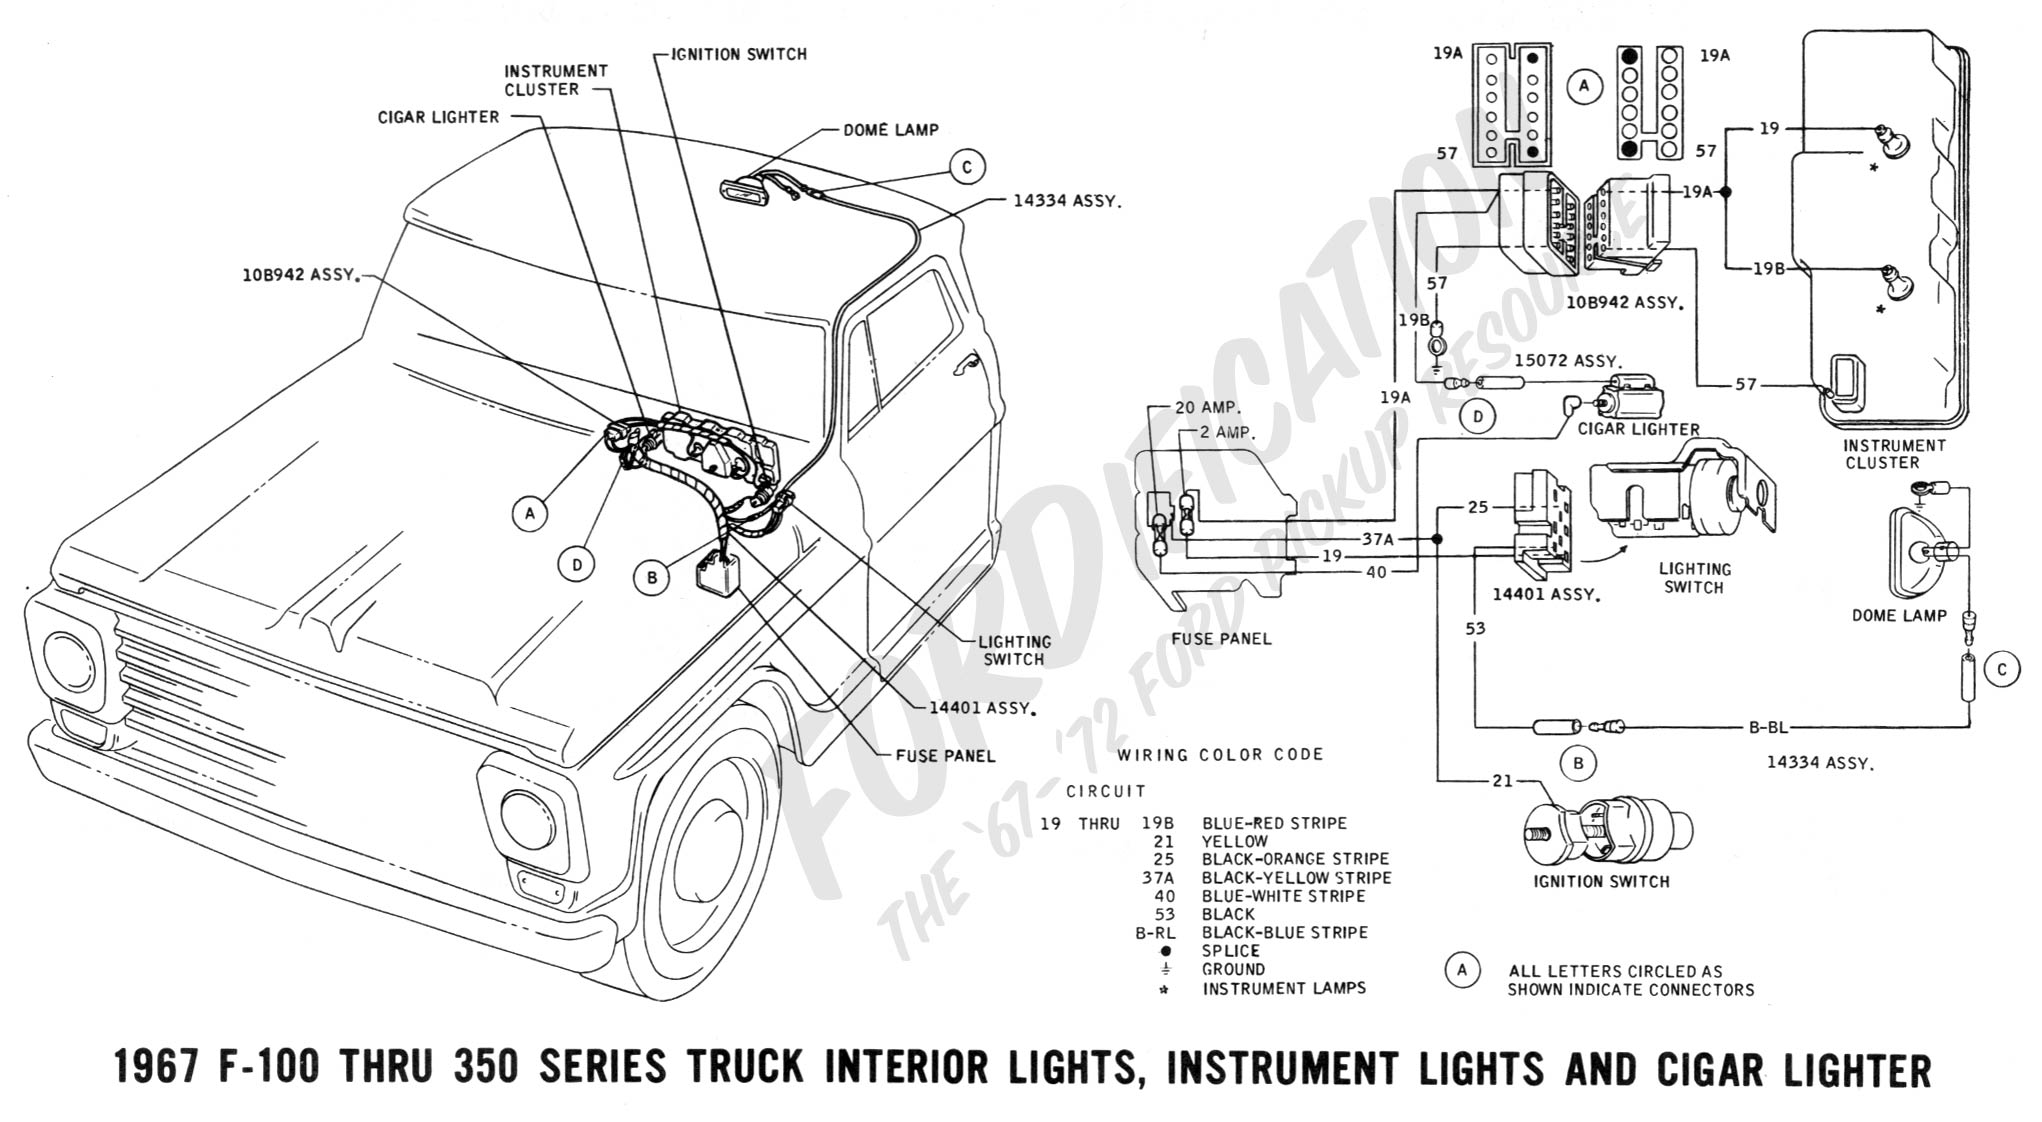 1967 ford falcon wiring diagram ford truck technical drawings and schematics - section h - wiring diagrams 1967 ford f250 wiring diagram